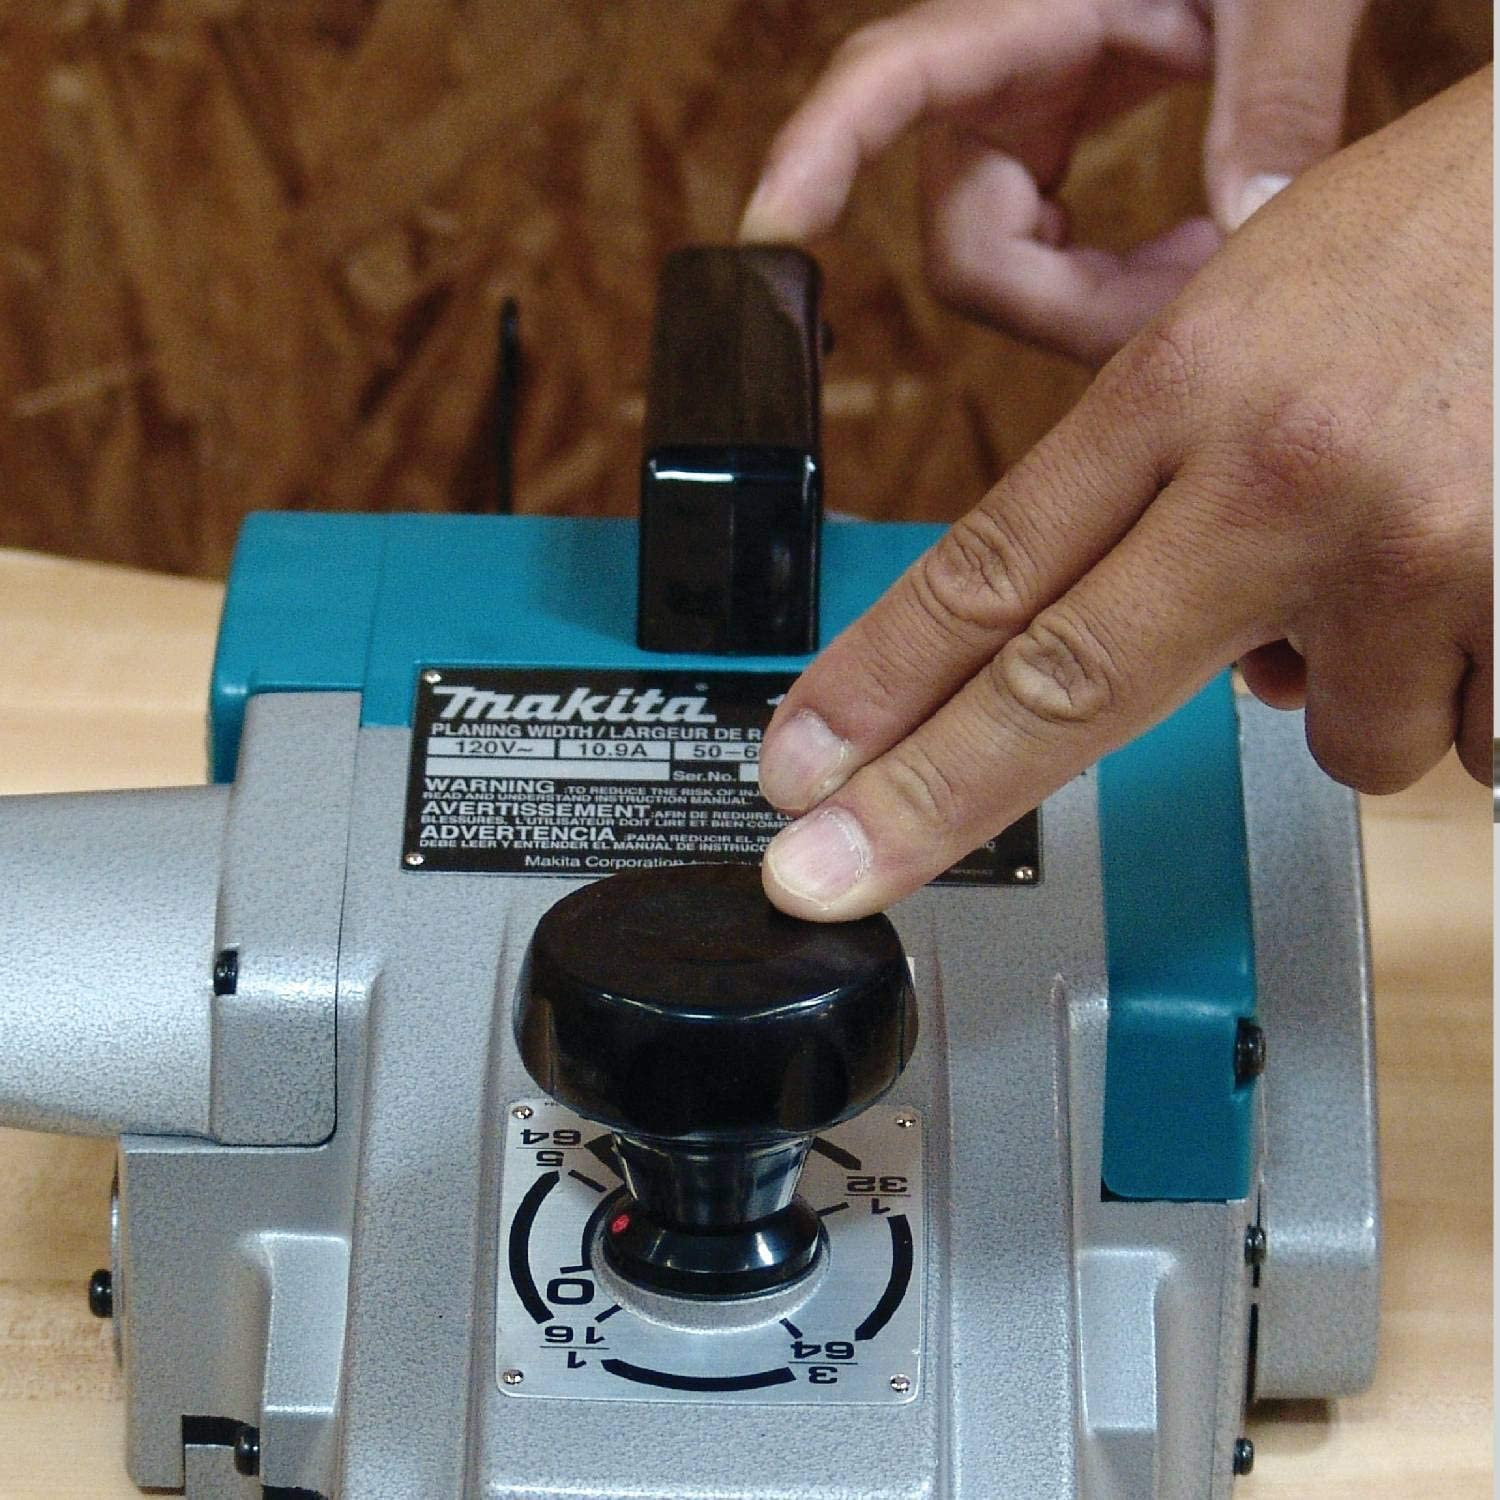 Makita 1806B Electric Hand Planers product image 6